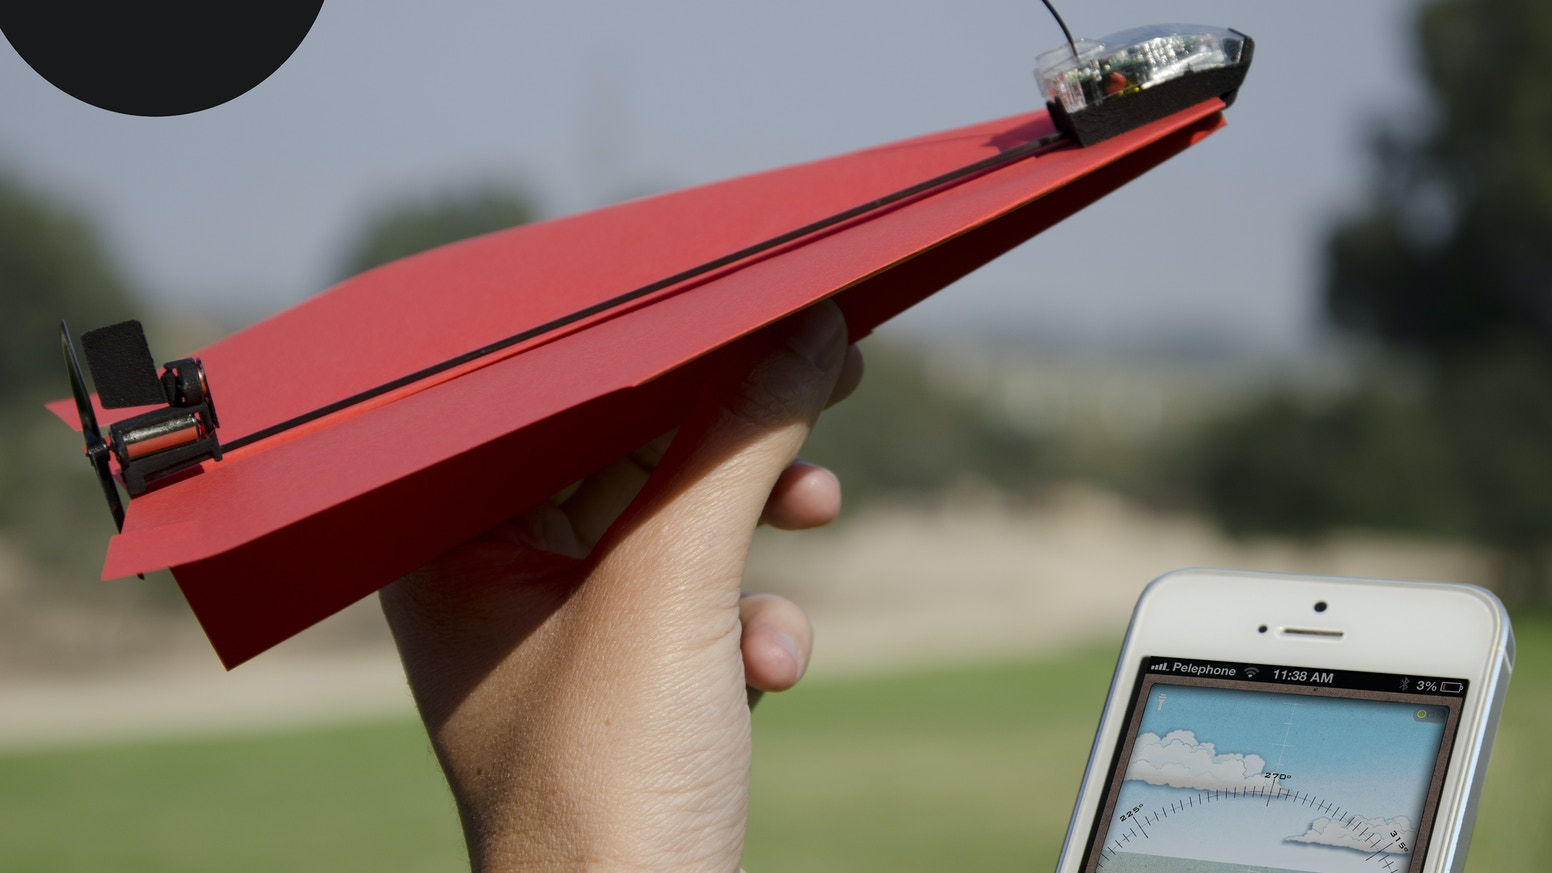 Powerup 30 Smartphone Controlled Paper Airplane By Shai Goitein Australia39s 2 Pin Power Cord Plug Saa Two Wire Kickstarter